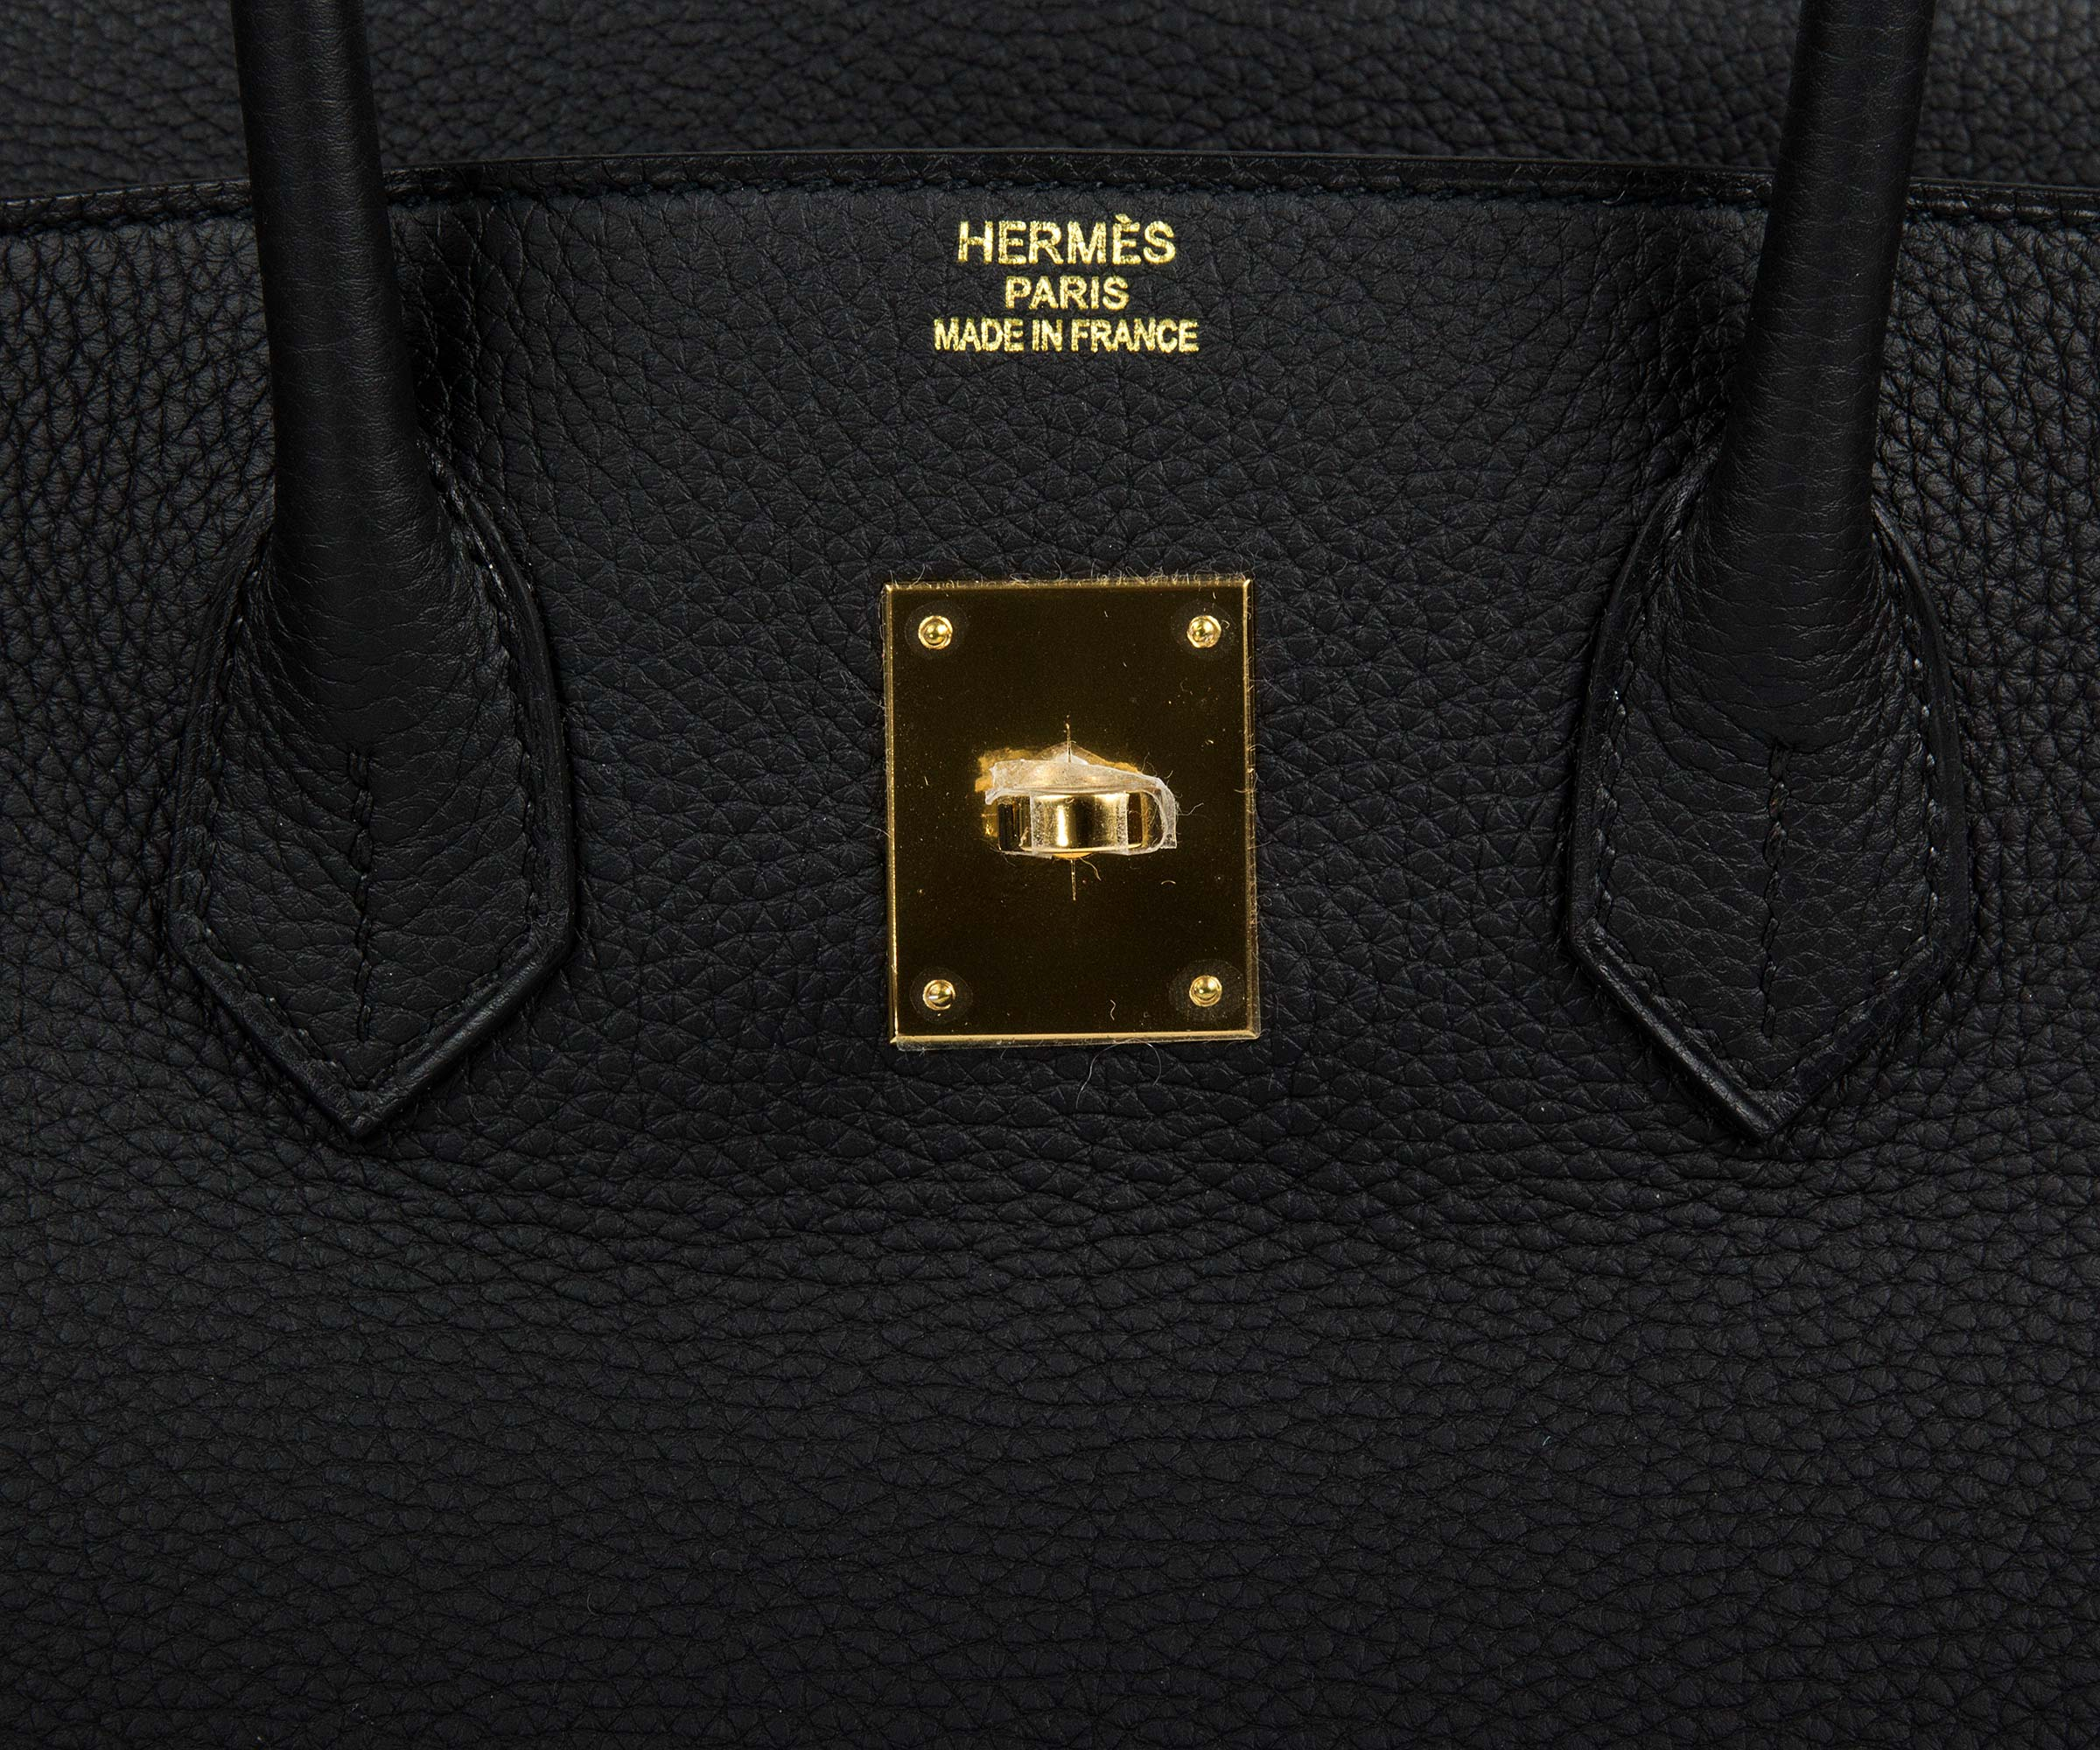 Hermes Birkin Black 35cm, Togo with Gold Hardware B171